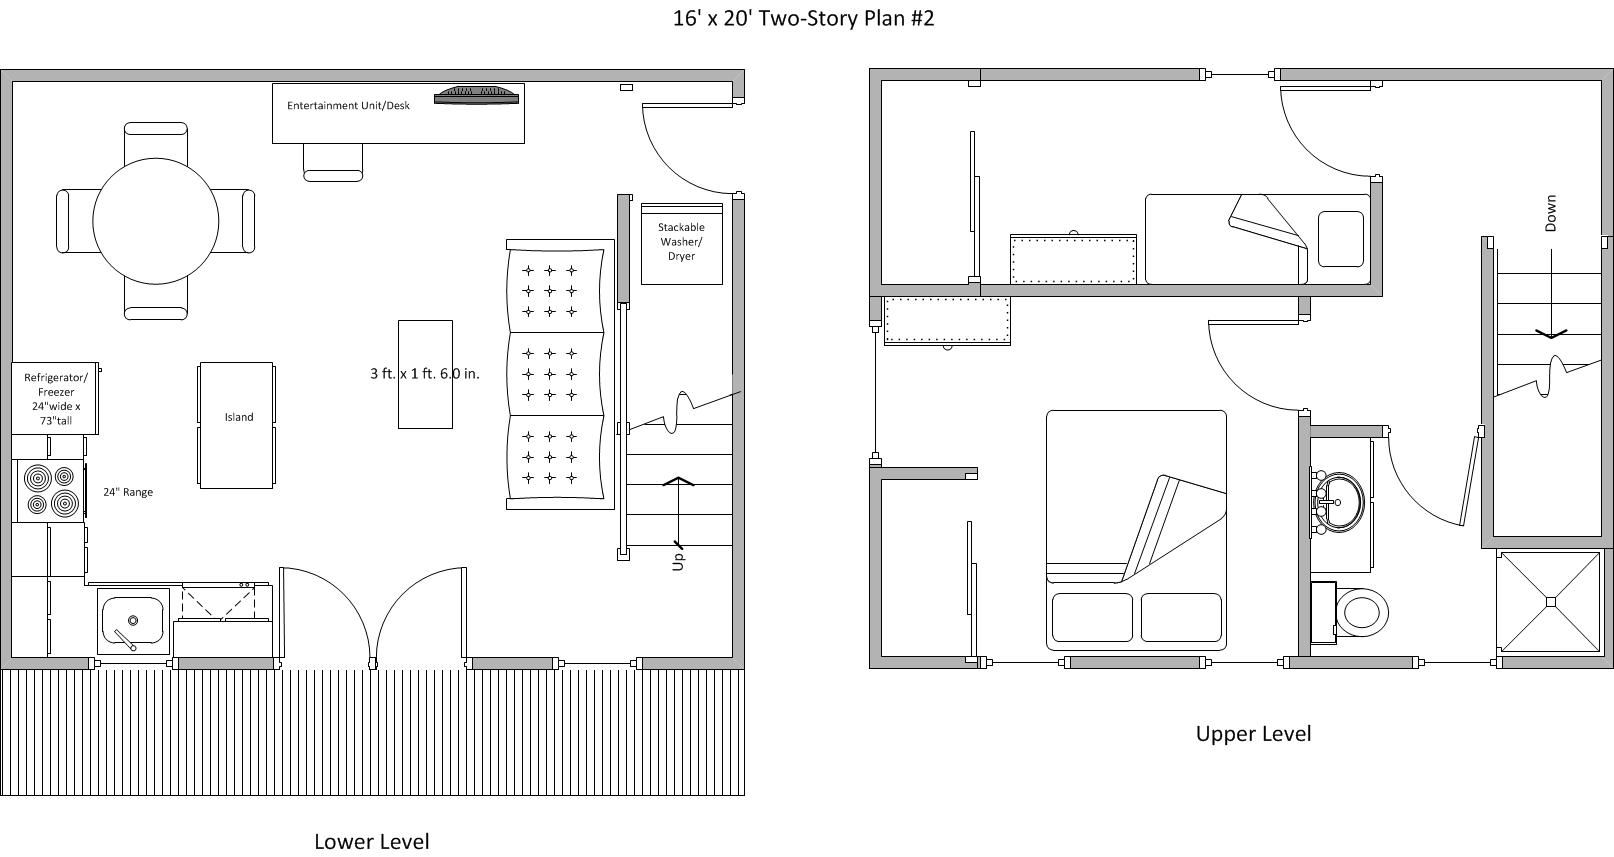 16 X 20 Plan 2 Tiny House Plans Tiny House Floor Plans House Plans